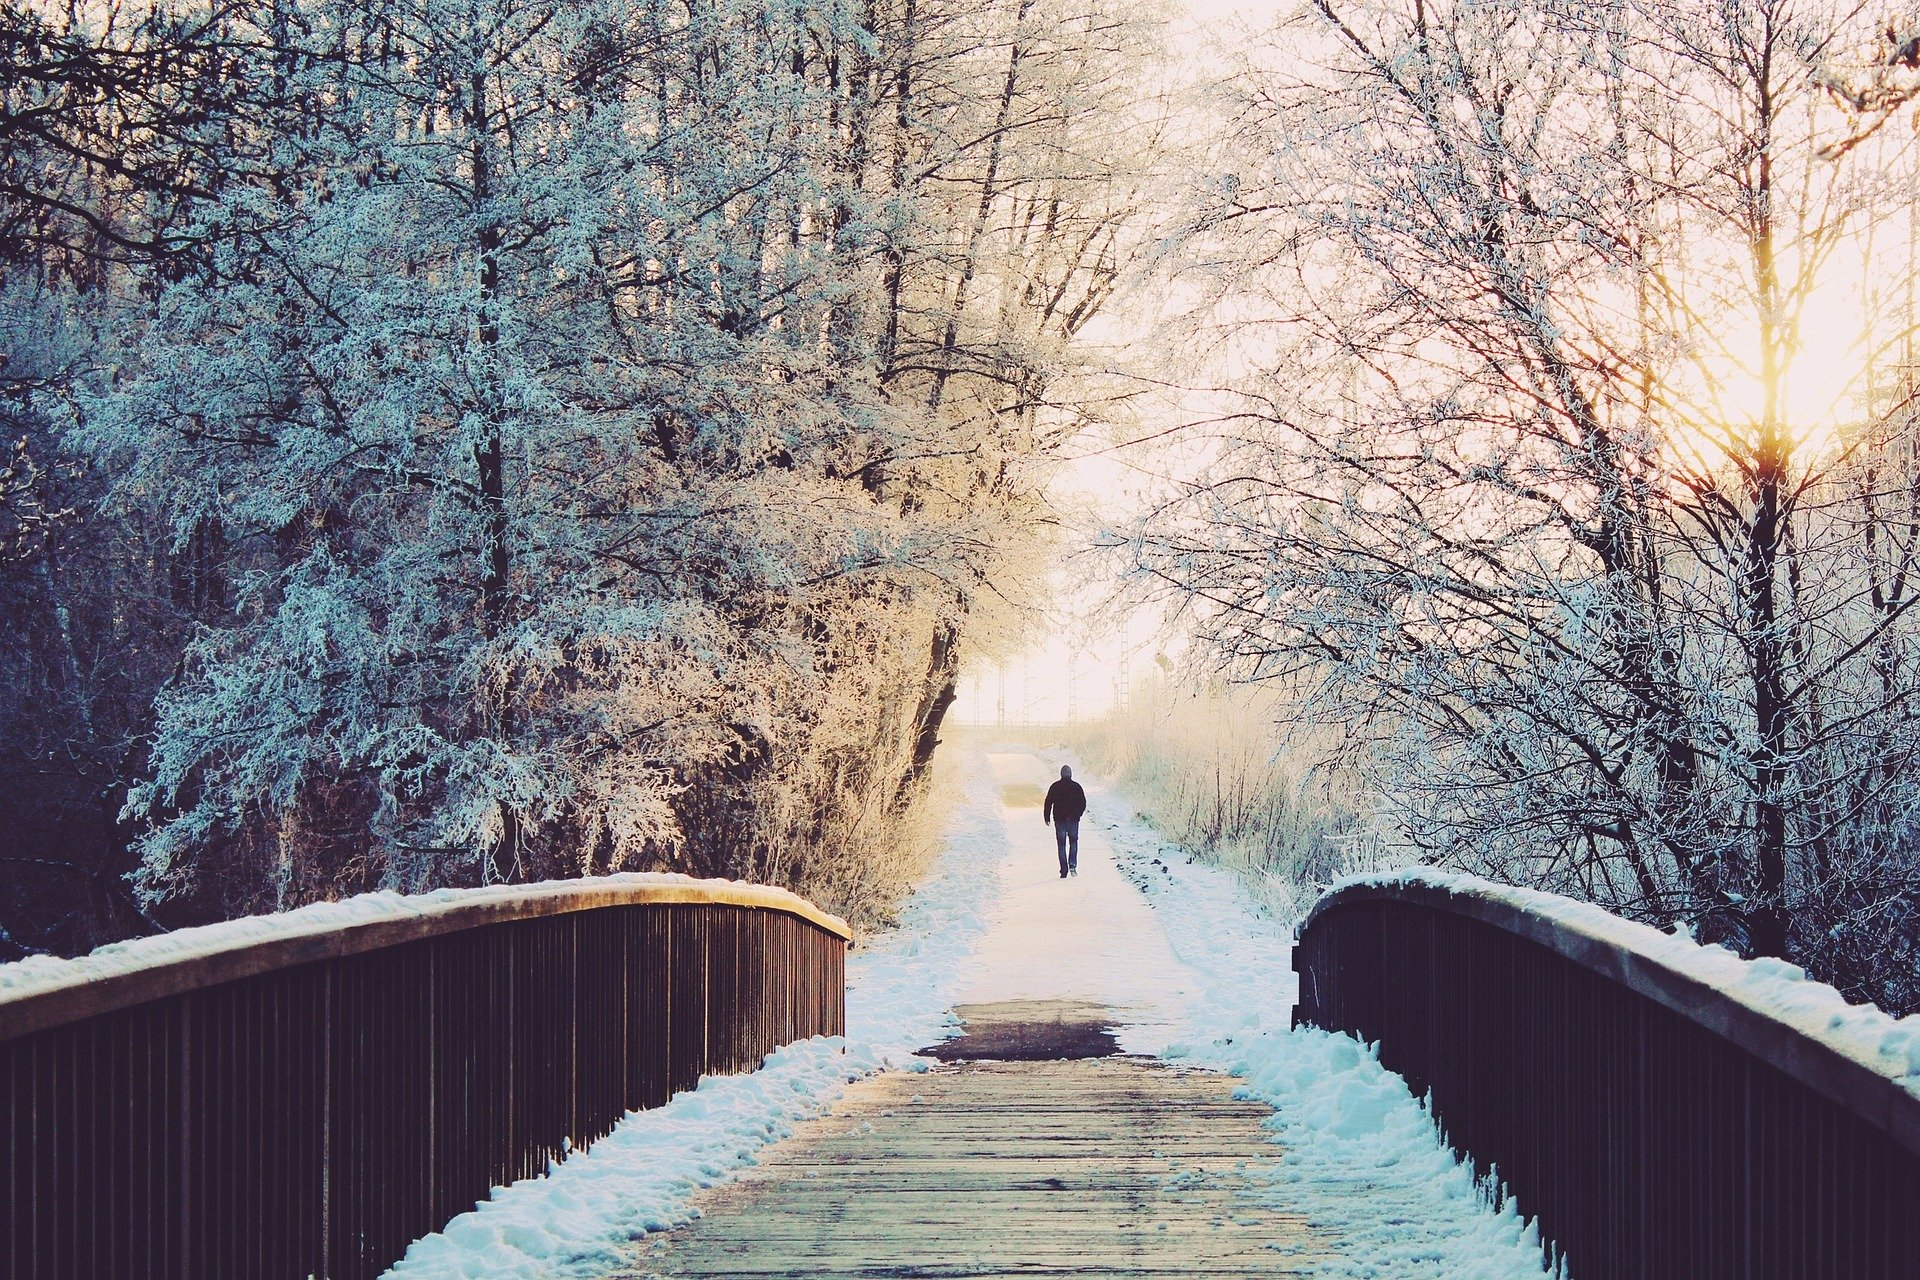 Seasonal depression can be helped by getting outside, even in winter